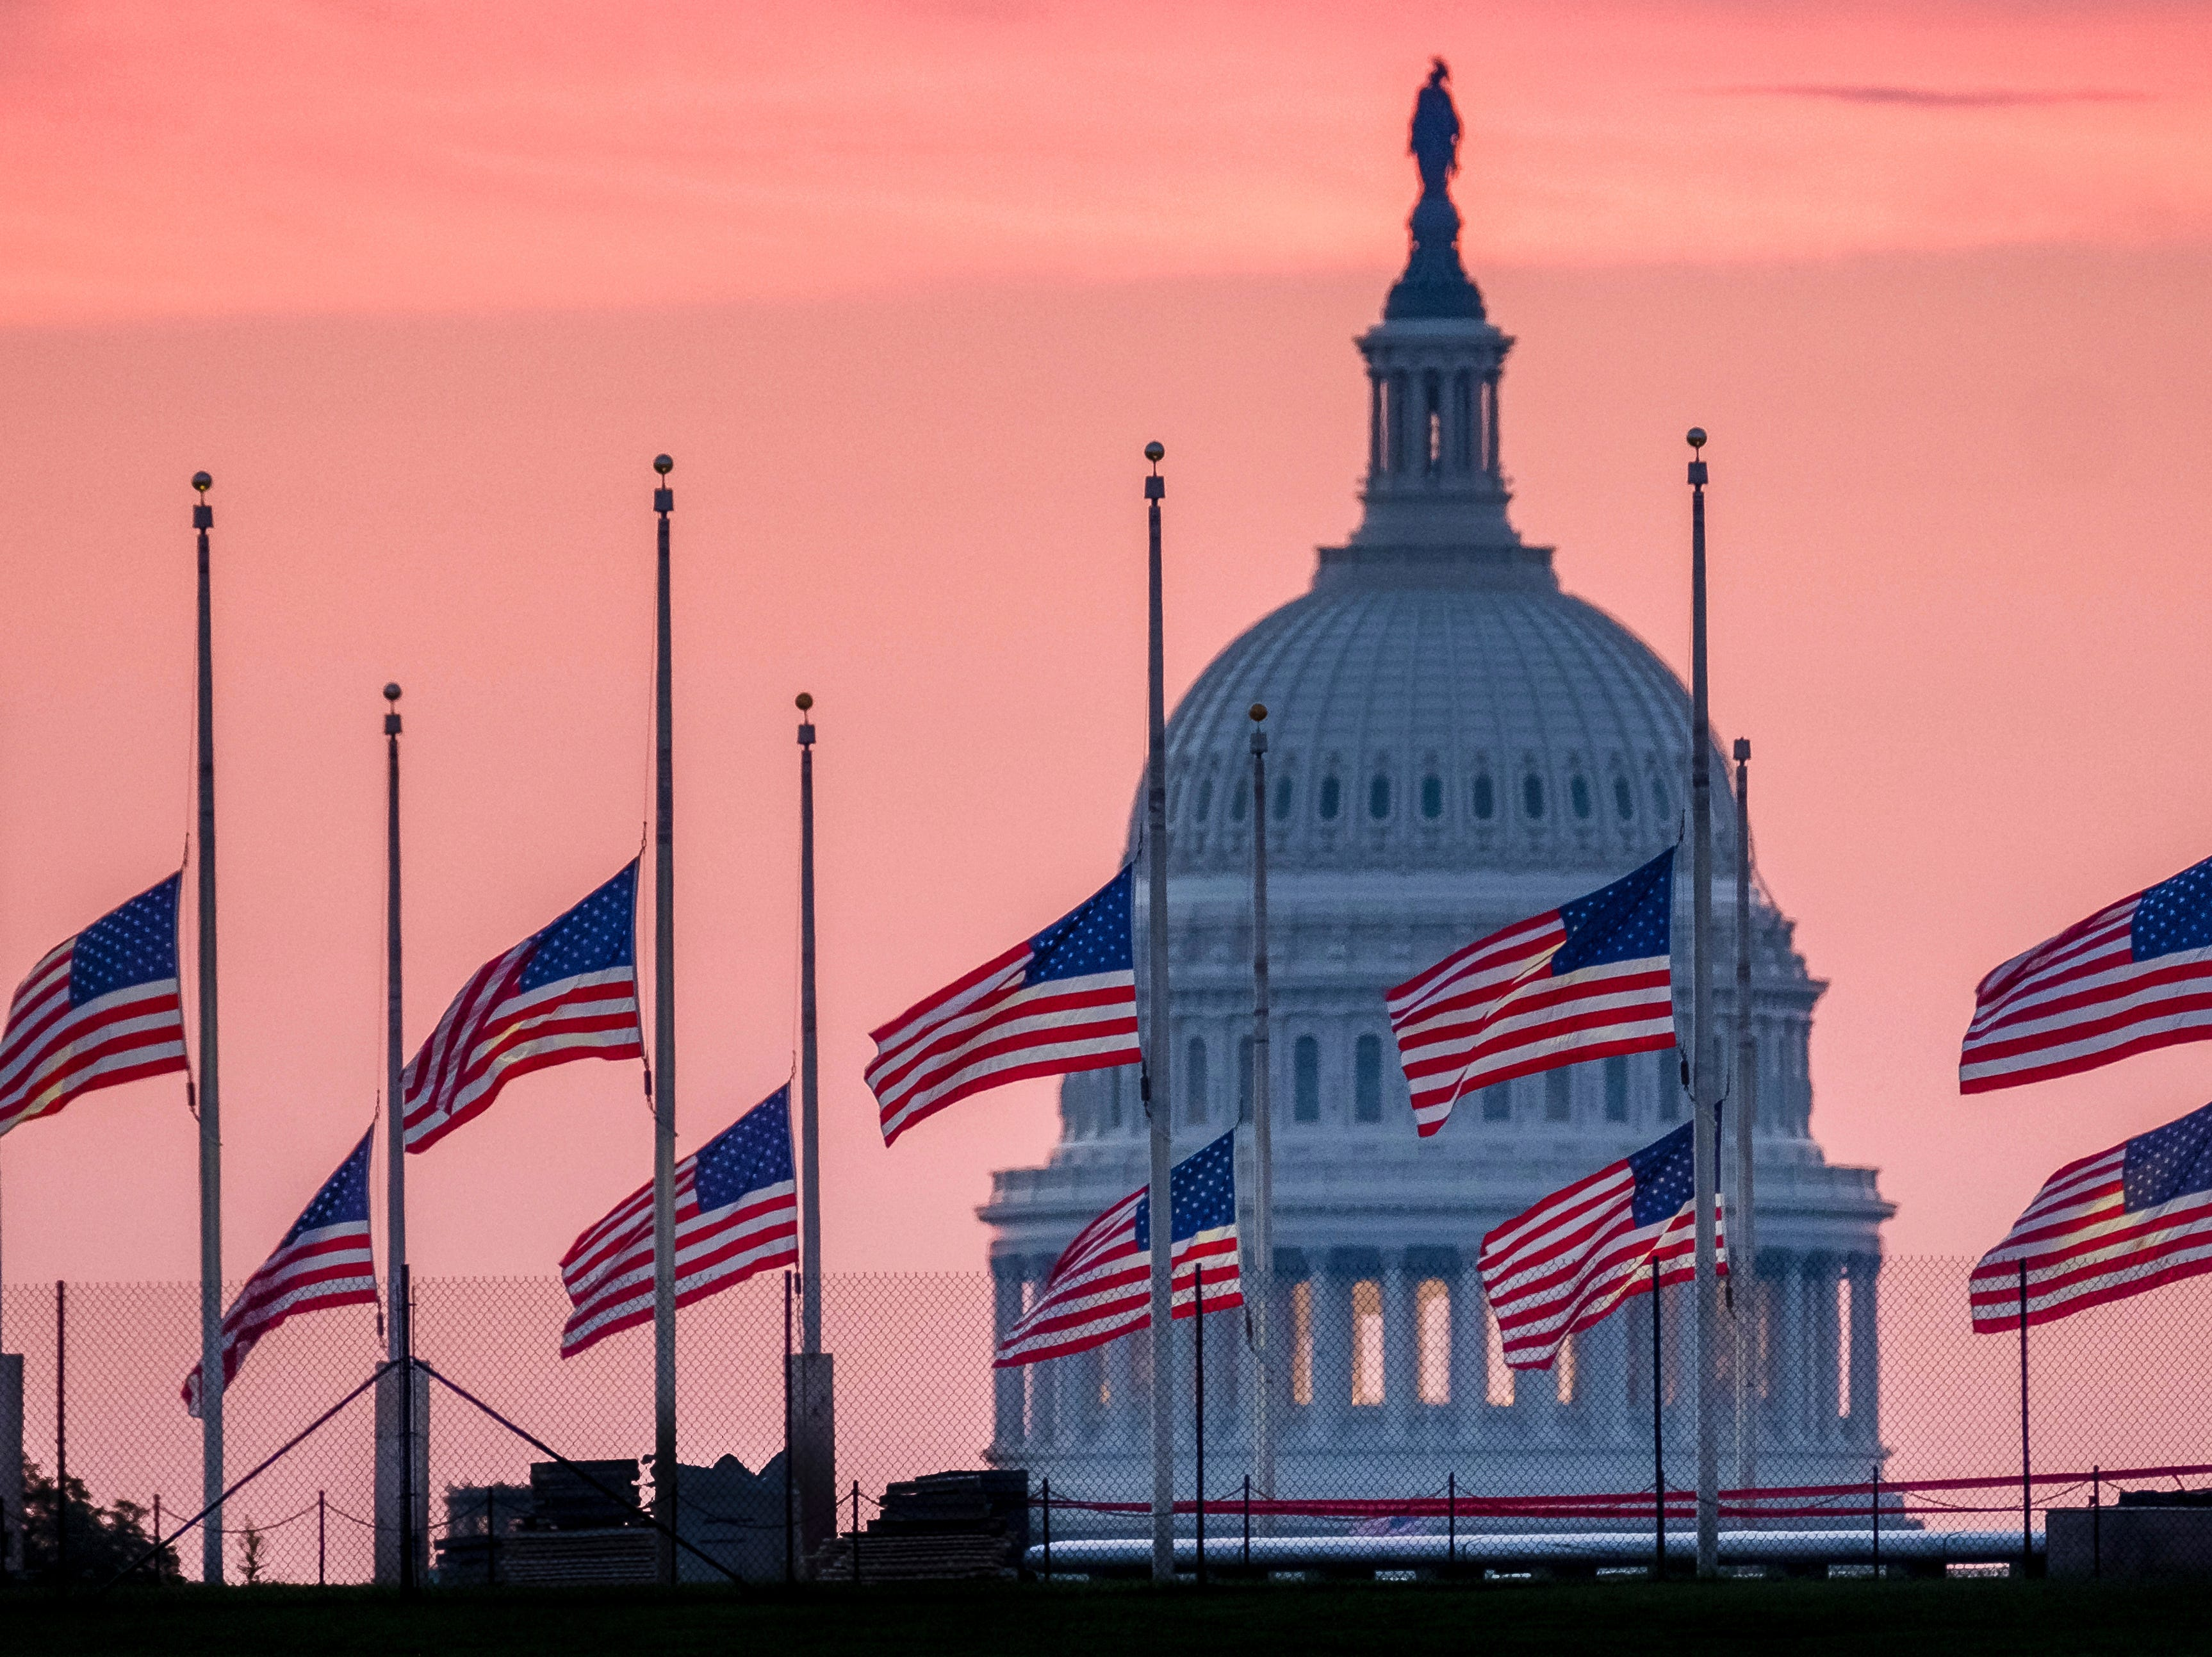 Flags flying at half-staff in honor of Sen. John McCain, R-Ariz., frame the U.S. Capital at daybreak in Washington on Aug. 26, 2018. McCain, 81, died at his ranch in Arizona after a yearlong battle with brain cancer.